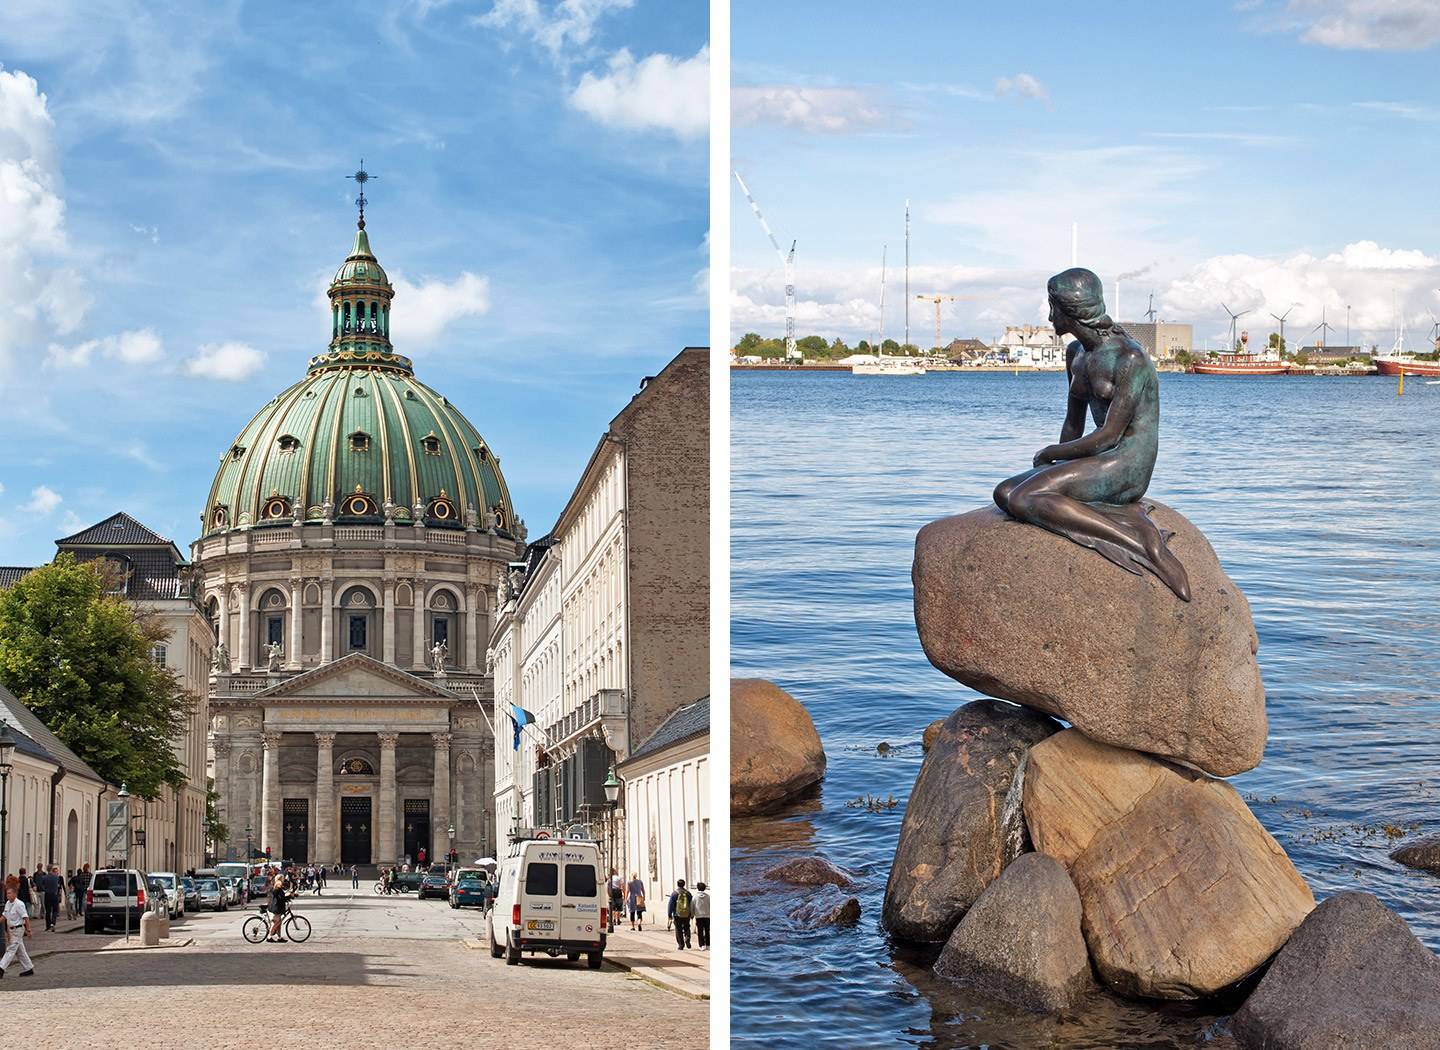 The Christiansborg Palace and Little Mermaid, Copenhagen